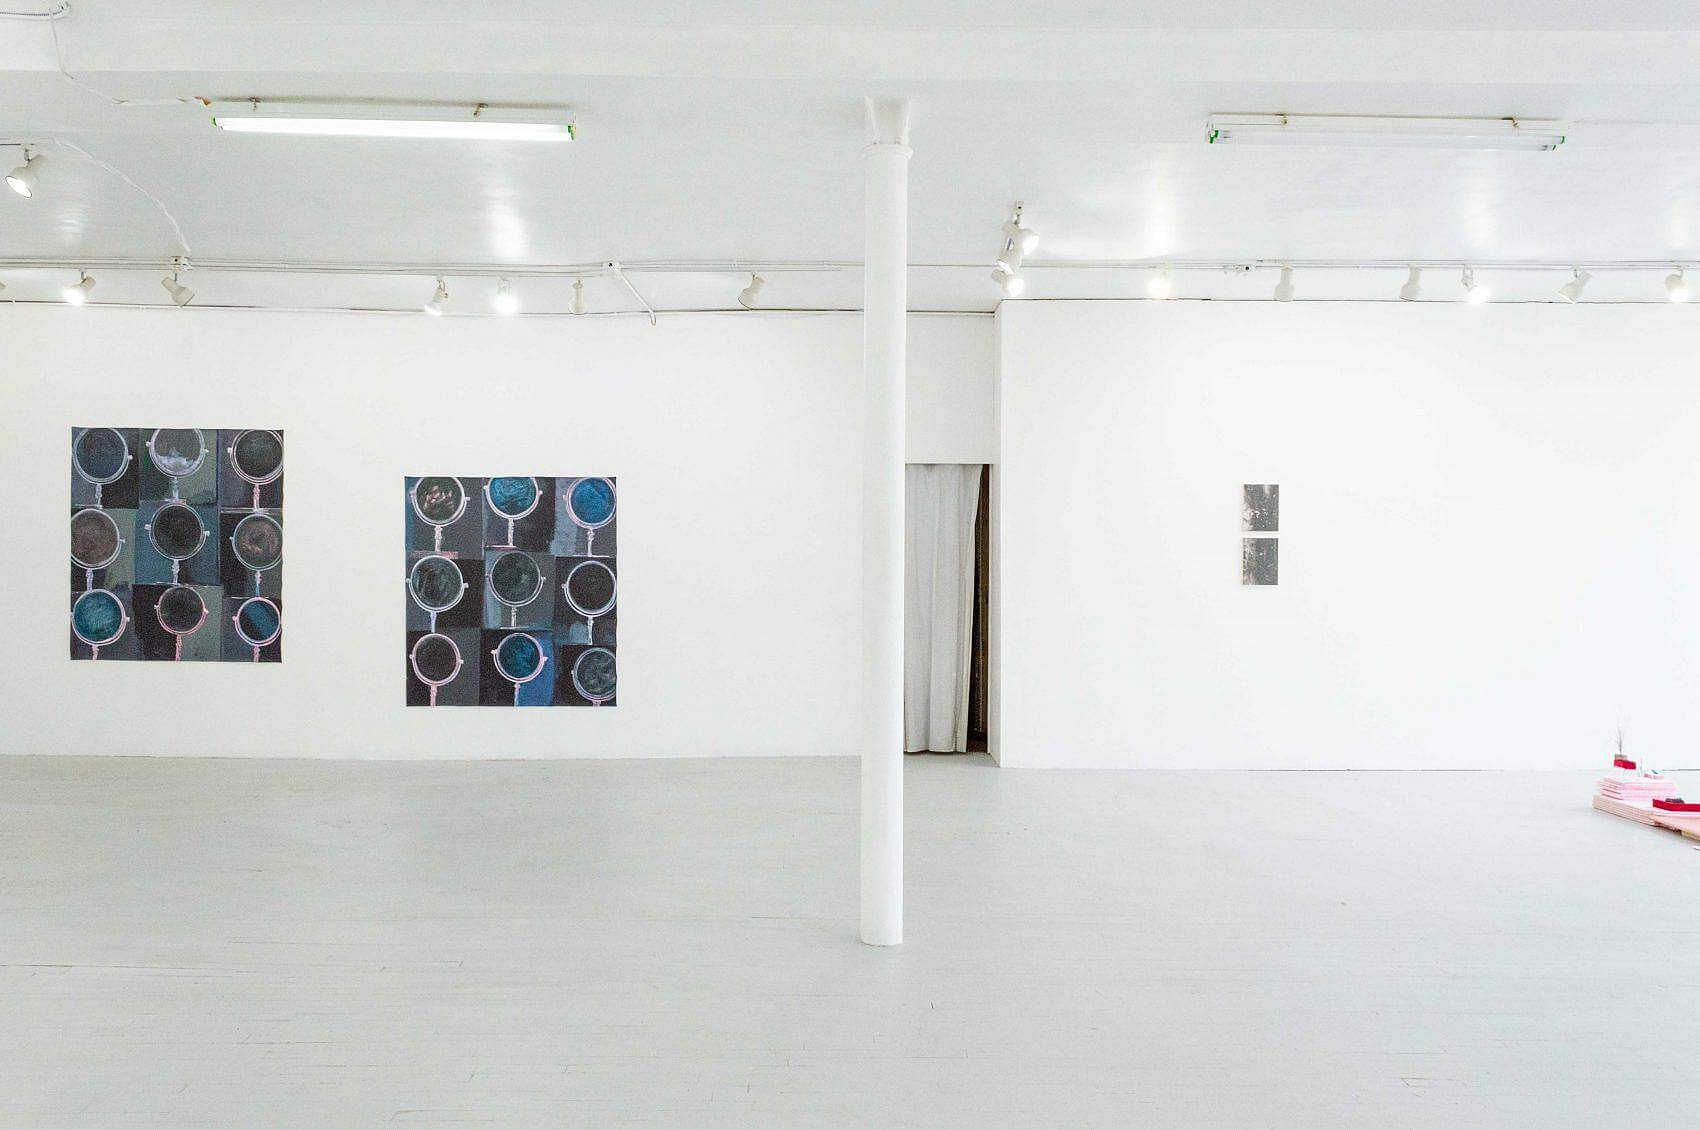 This is an installation shot of the exhibition. To the left of the pole in the center of the room are both paintings from Madeline Gallucci's